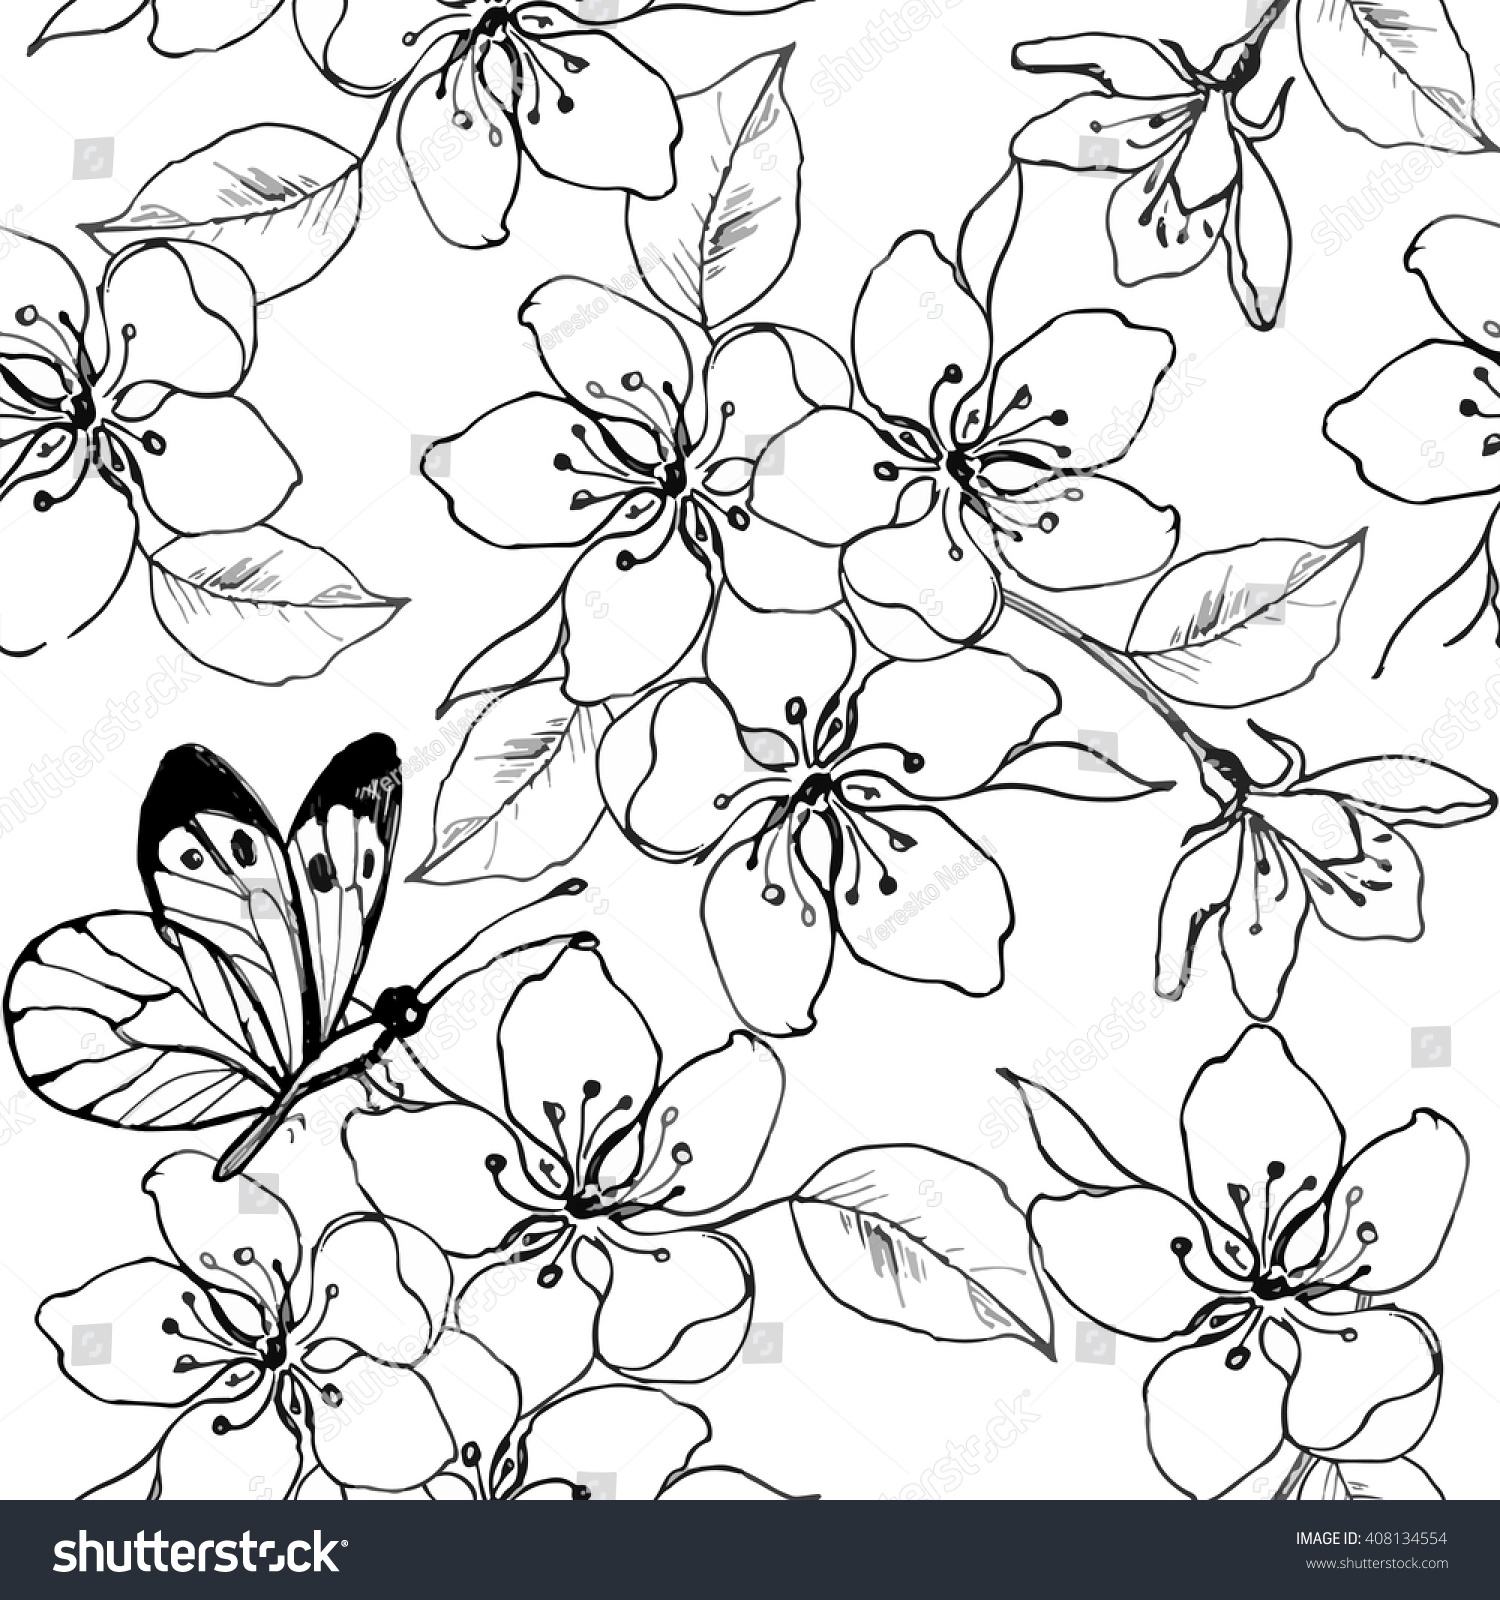 Hand Drawn Branch Cherry Blossom Pear Stock Vector